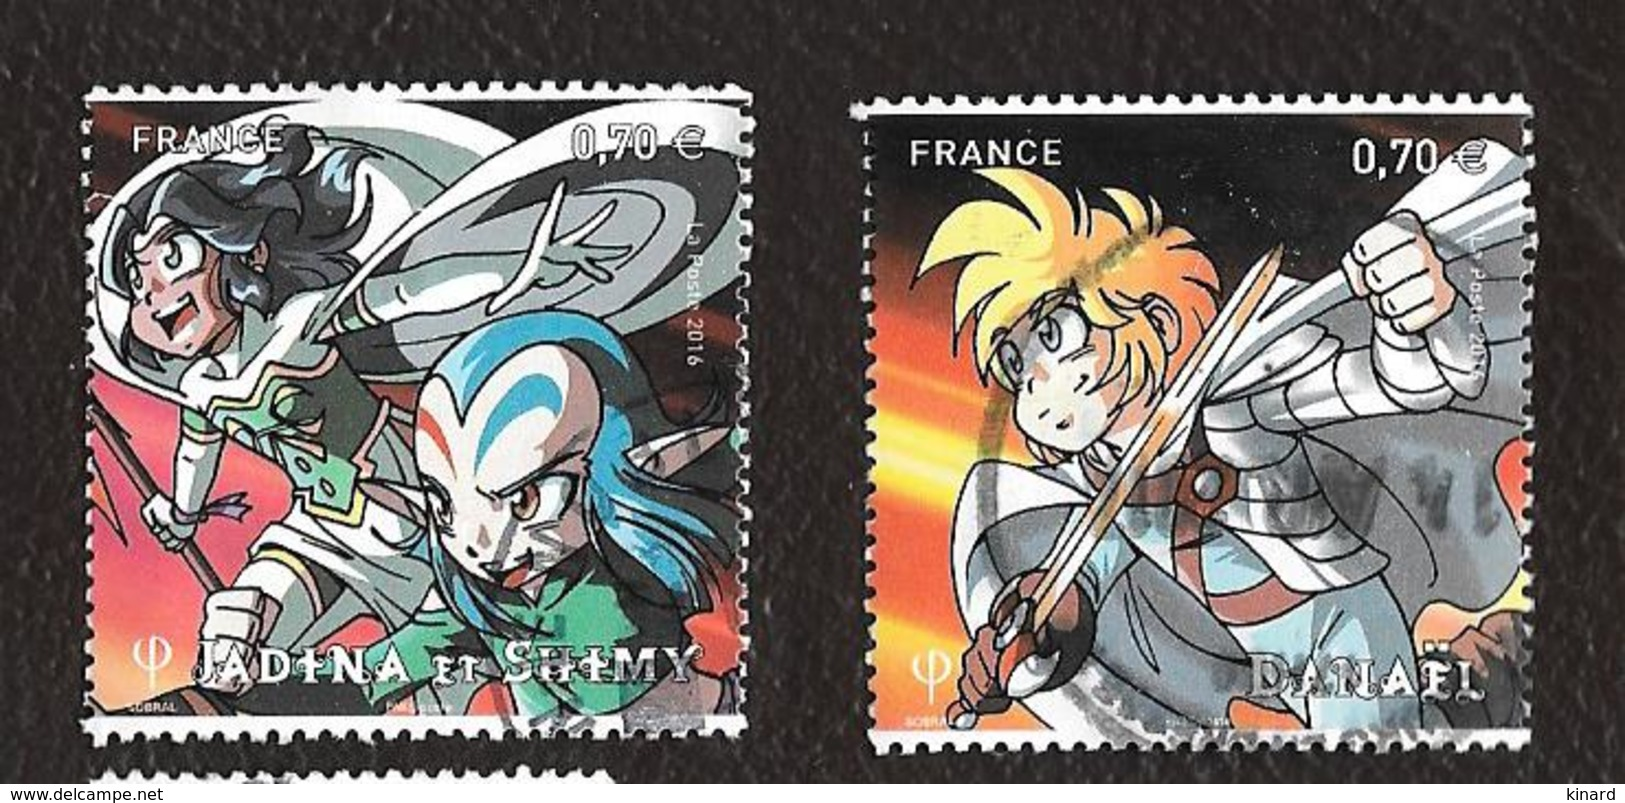 TIMBRES FRANCAIS .  OBLITERATION RONDE. ANNEE 2016.. BANDE DESSINEE MANGA..LA PAIRE  N°5081/5082. TBE SCAN - Usati